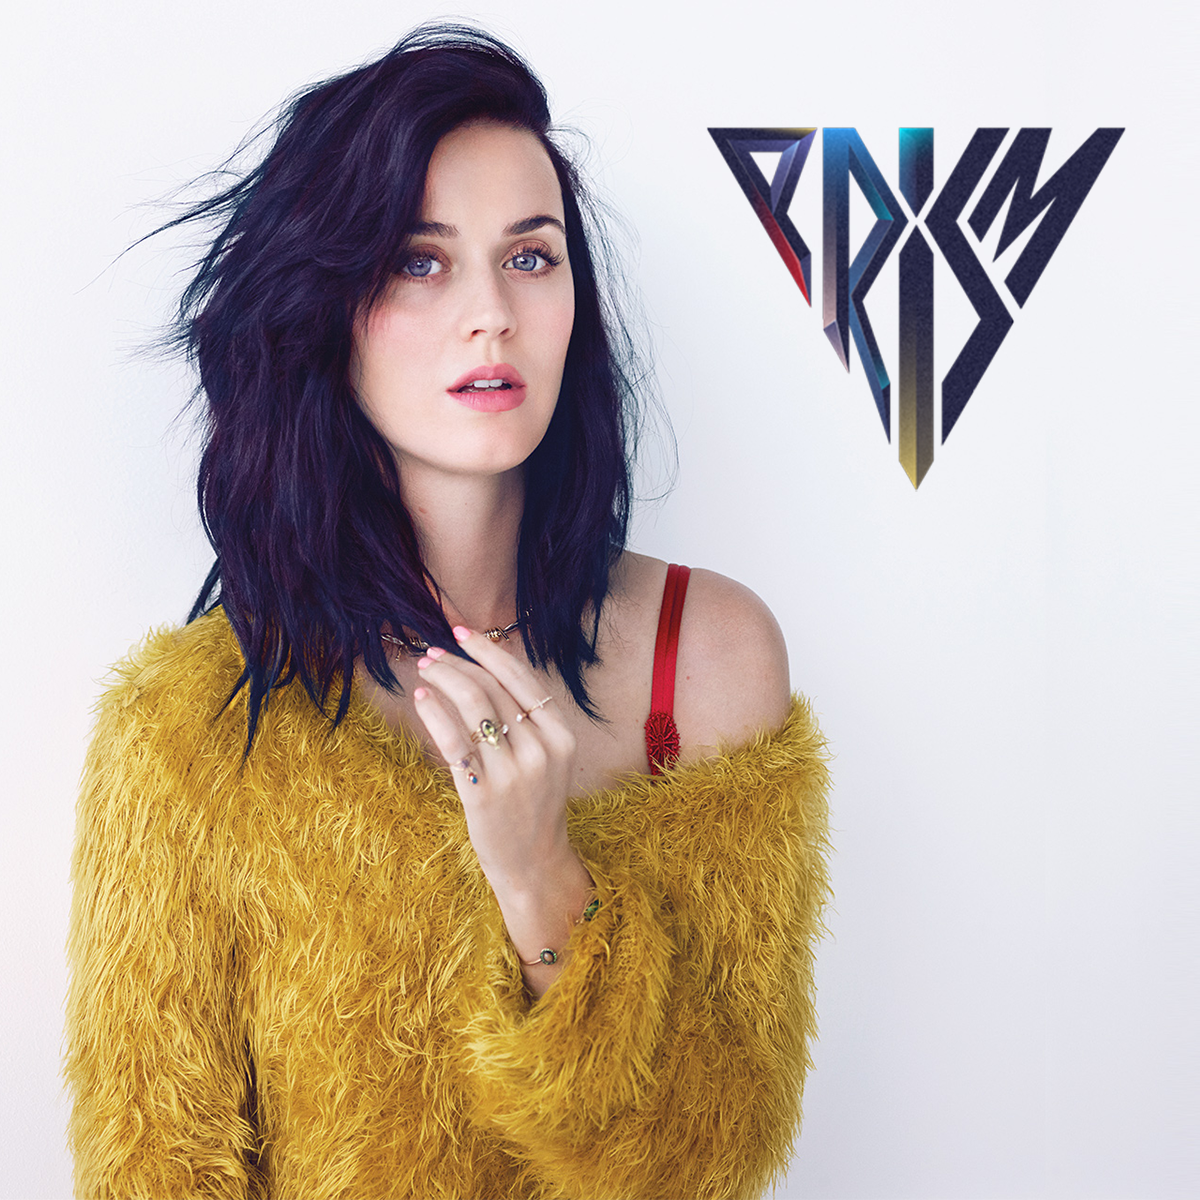 Stream Katy Perry's new album 'Prism' in full